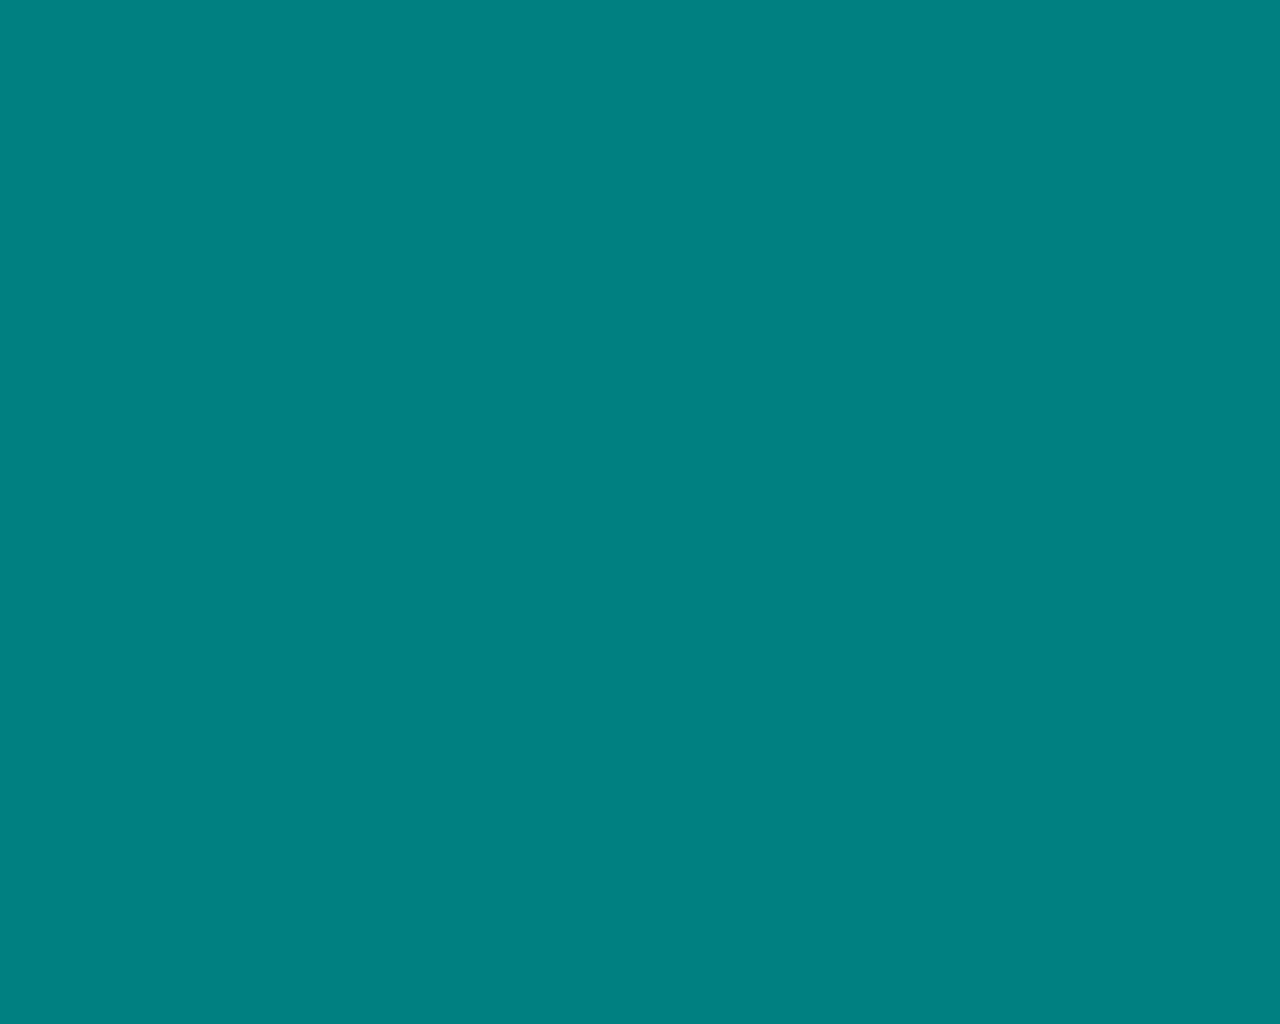 1280x1024 Teal Solid Color Background